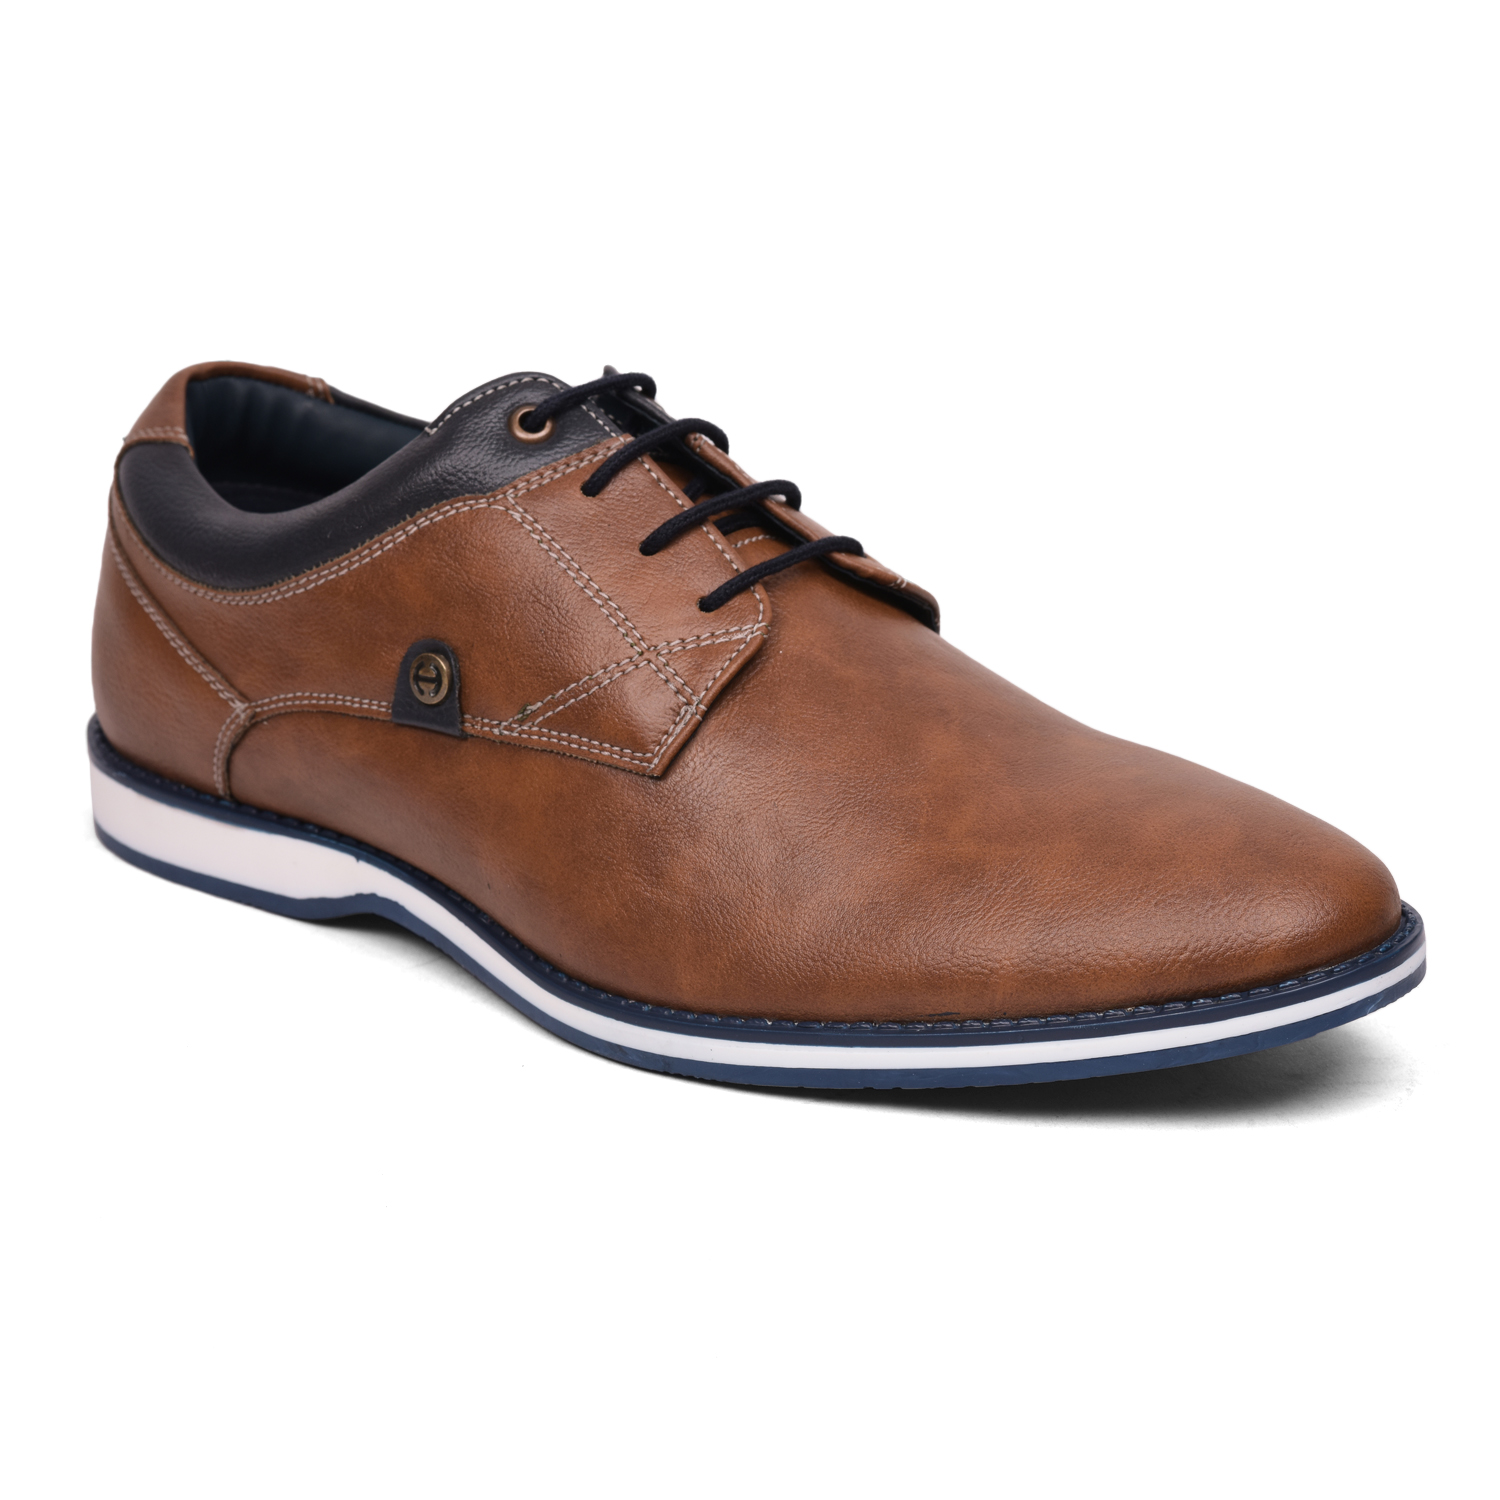 Liberty | Liberty Healers Brown Casual Shoes SYN-42_1 For - Men